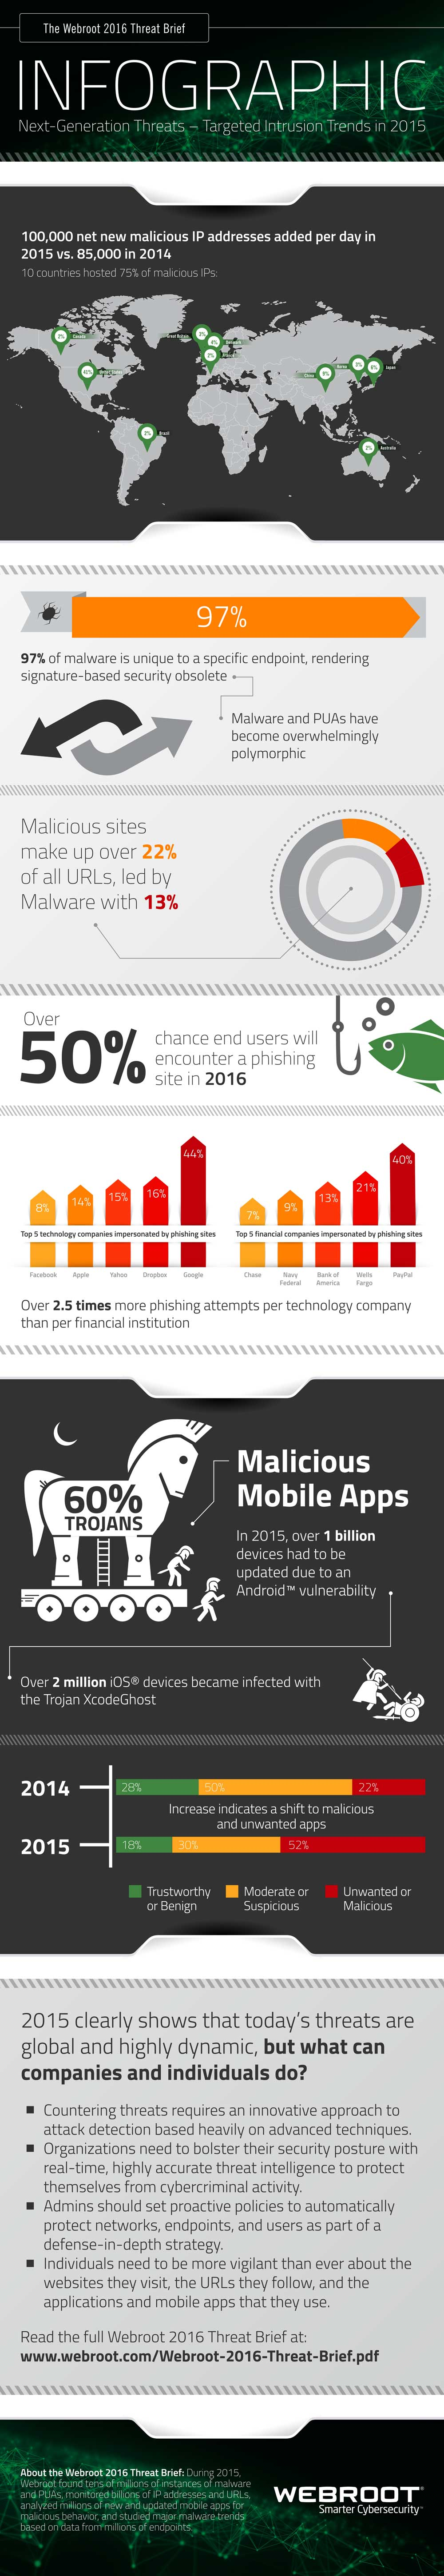 The Webroot 2016 Threat Brief - infographic